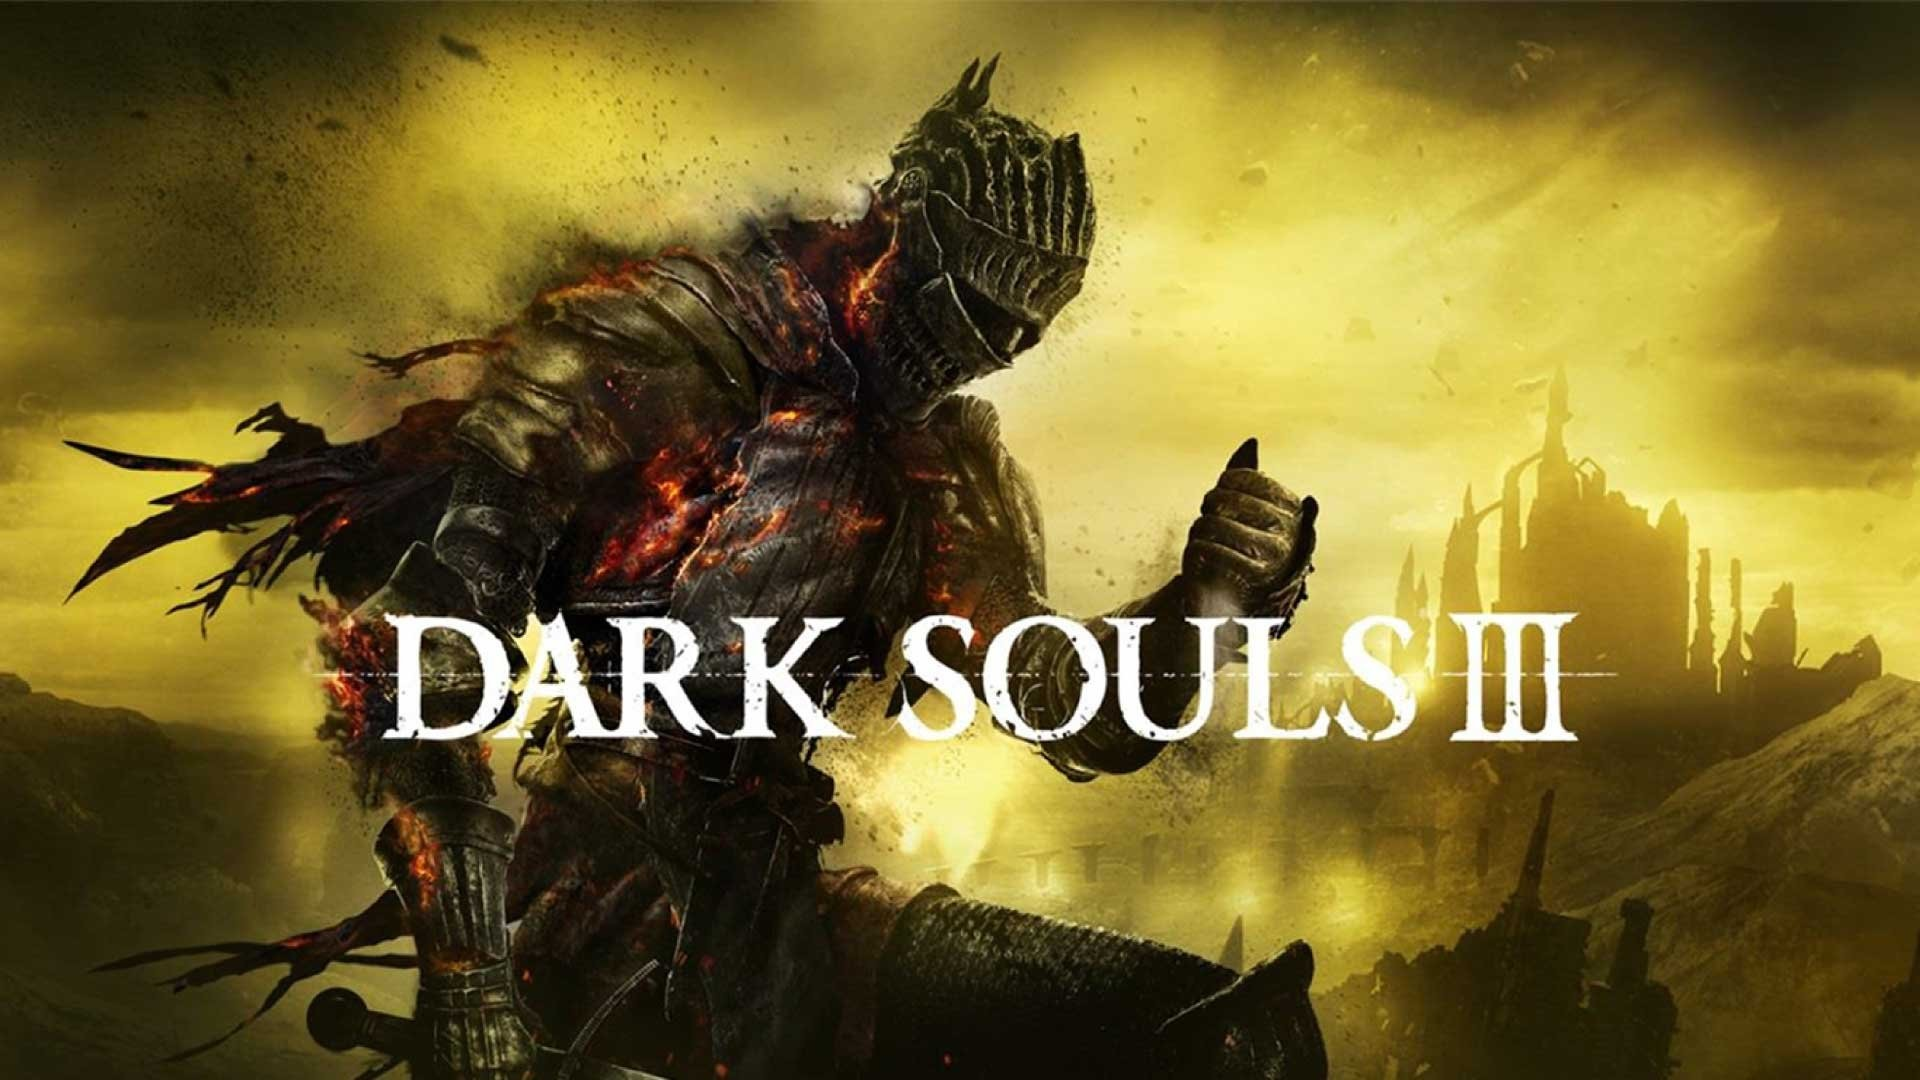 1920x1080 Dark Souls 3 Wallpaper Hd Resolution Is Cool Wallpapers